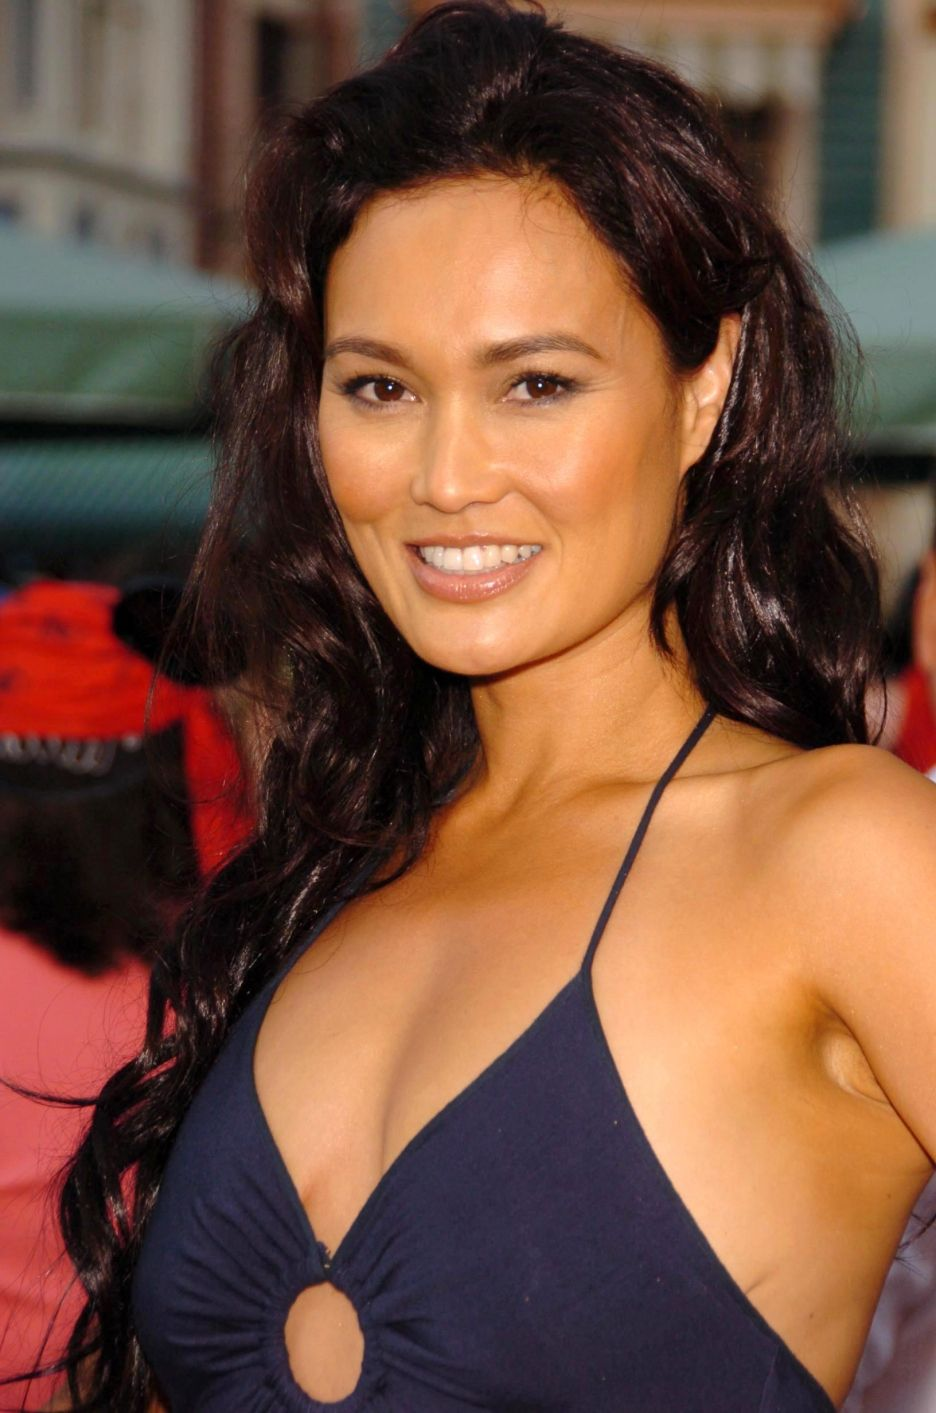 Cleavage Tia Carrere nude (98 foto and video), Pussy, Fappening, Instagram, legs 2015